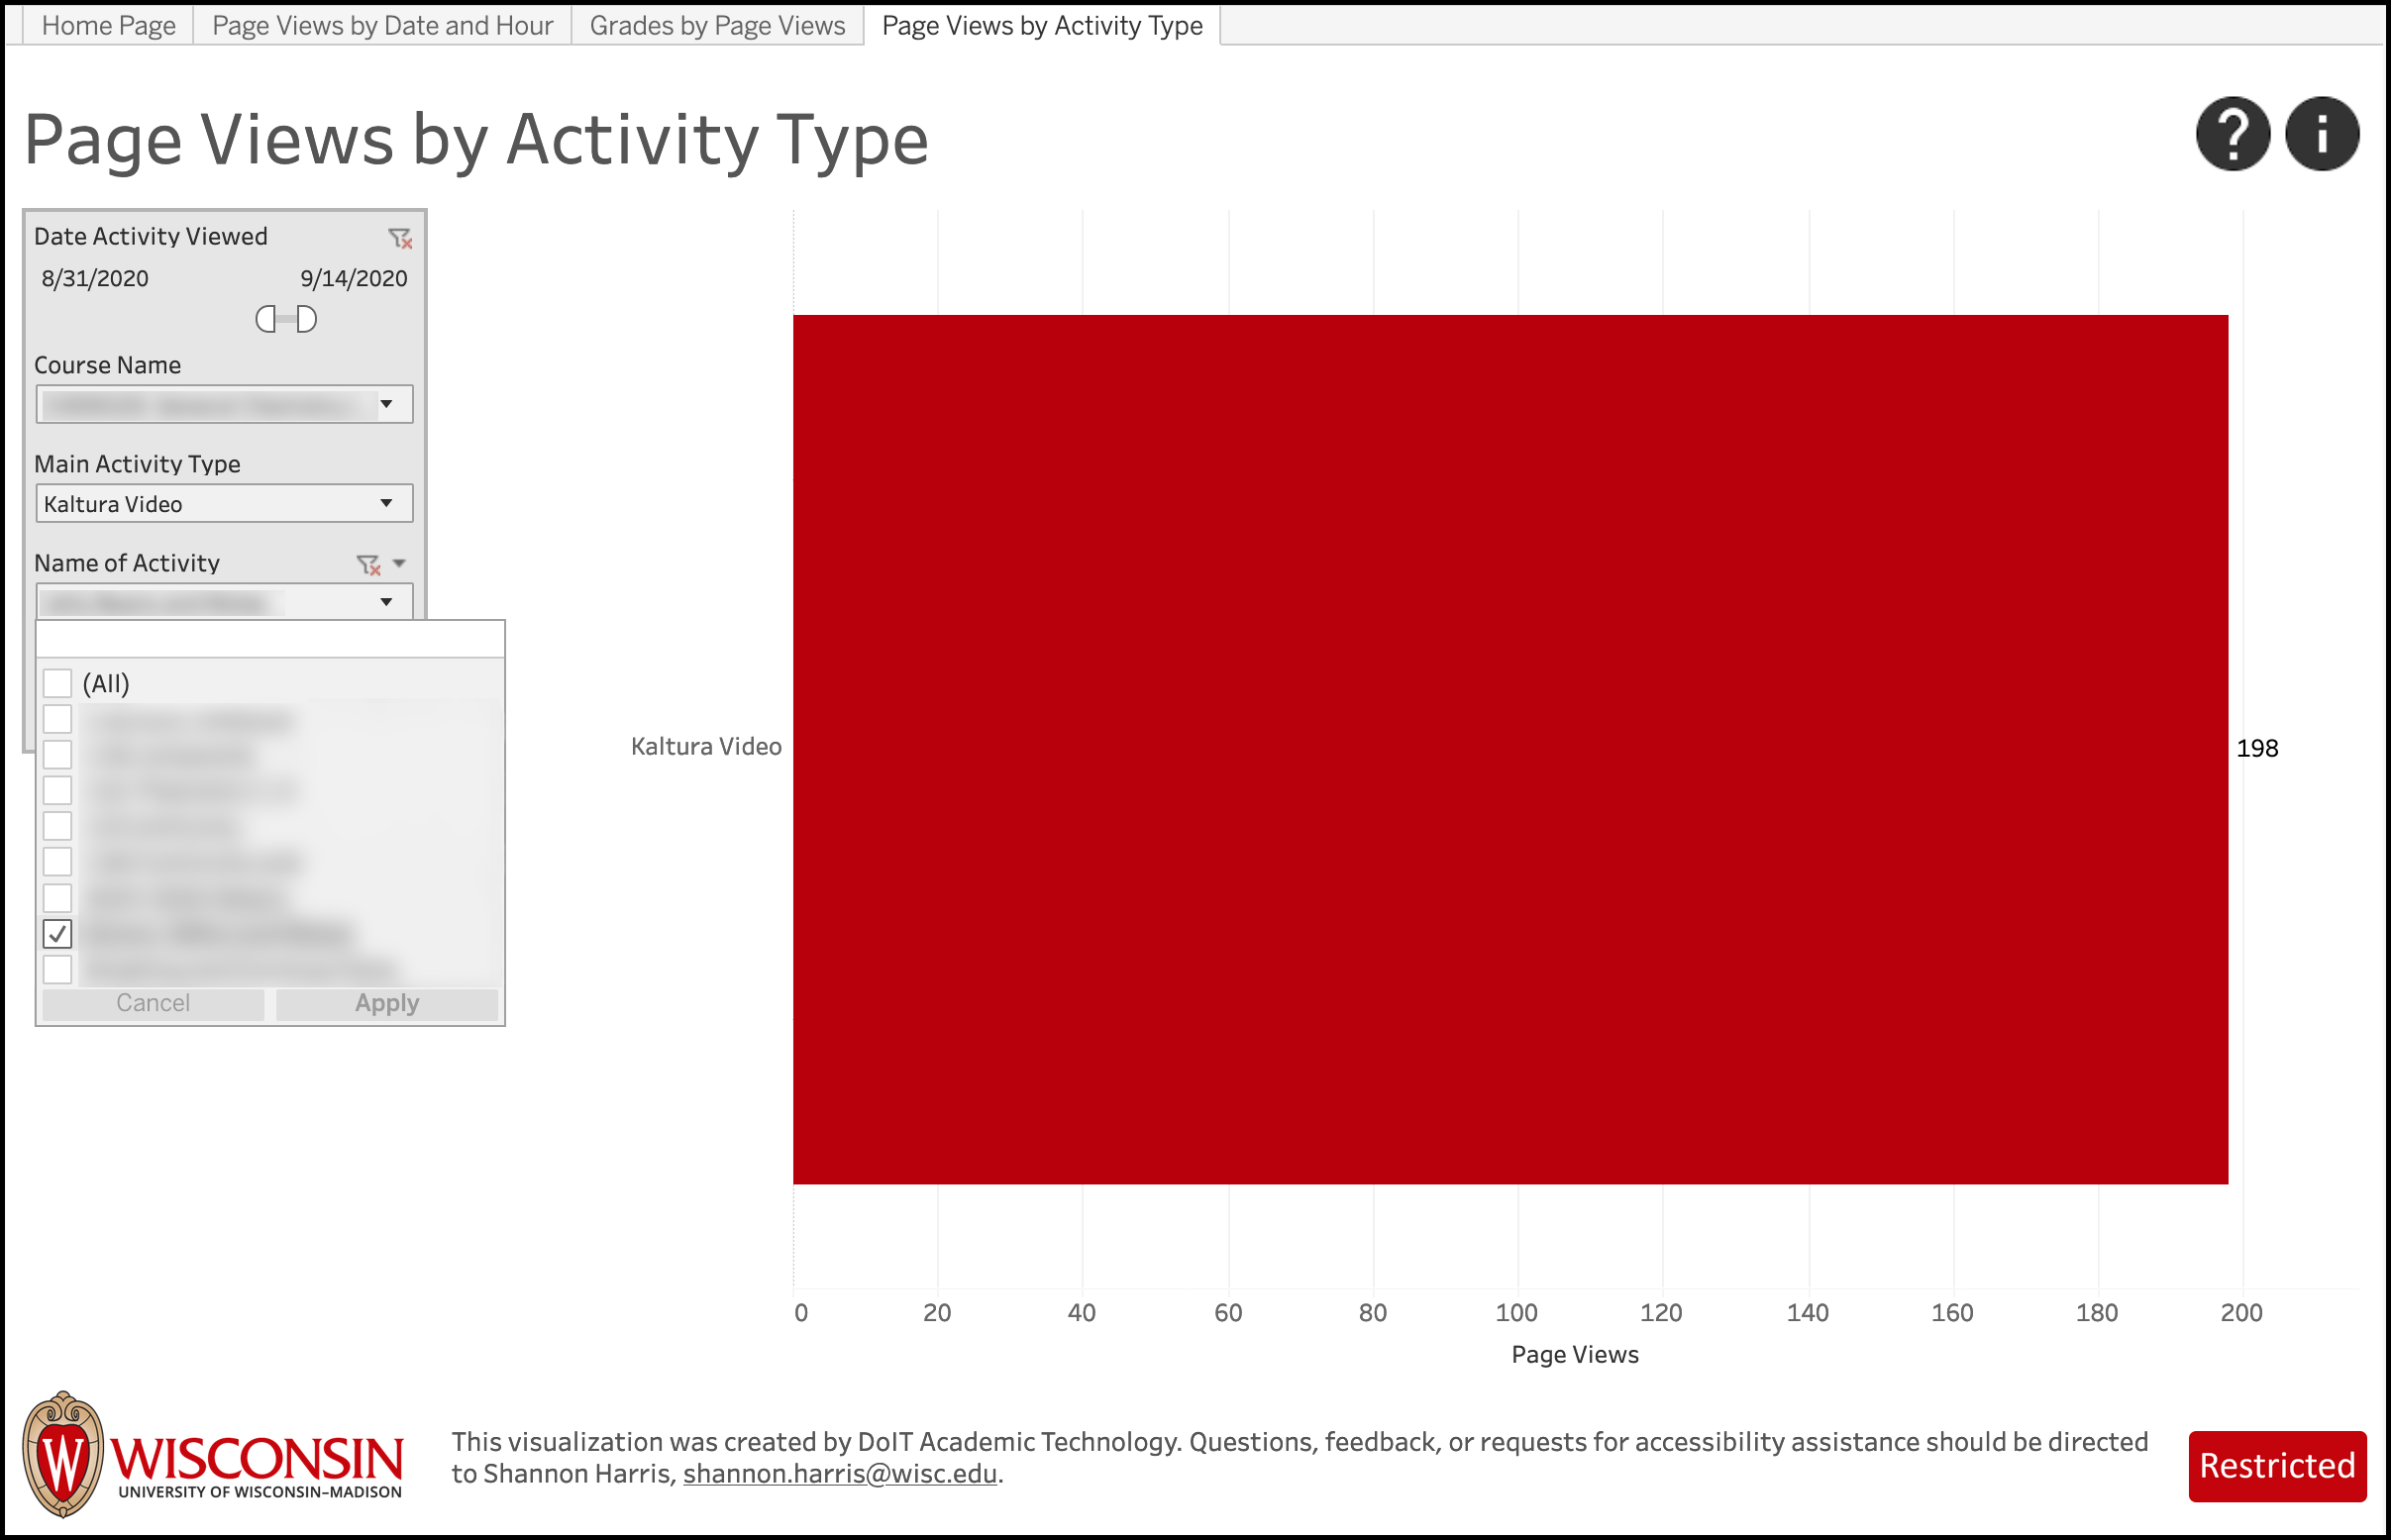 LEAD Page Views by Activity Type - filter by specific Activity